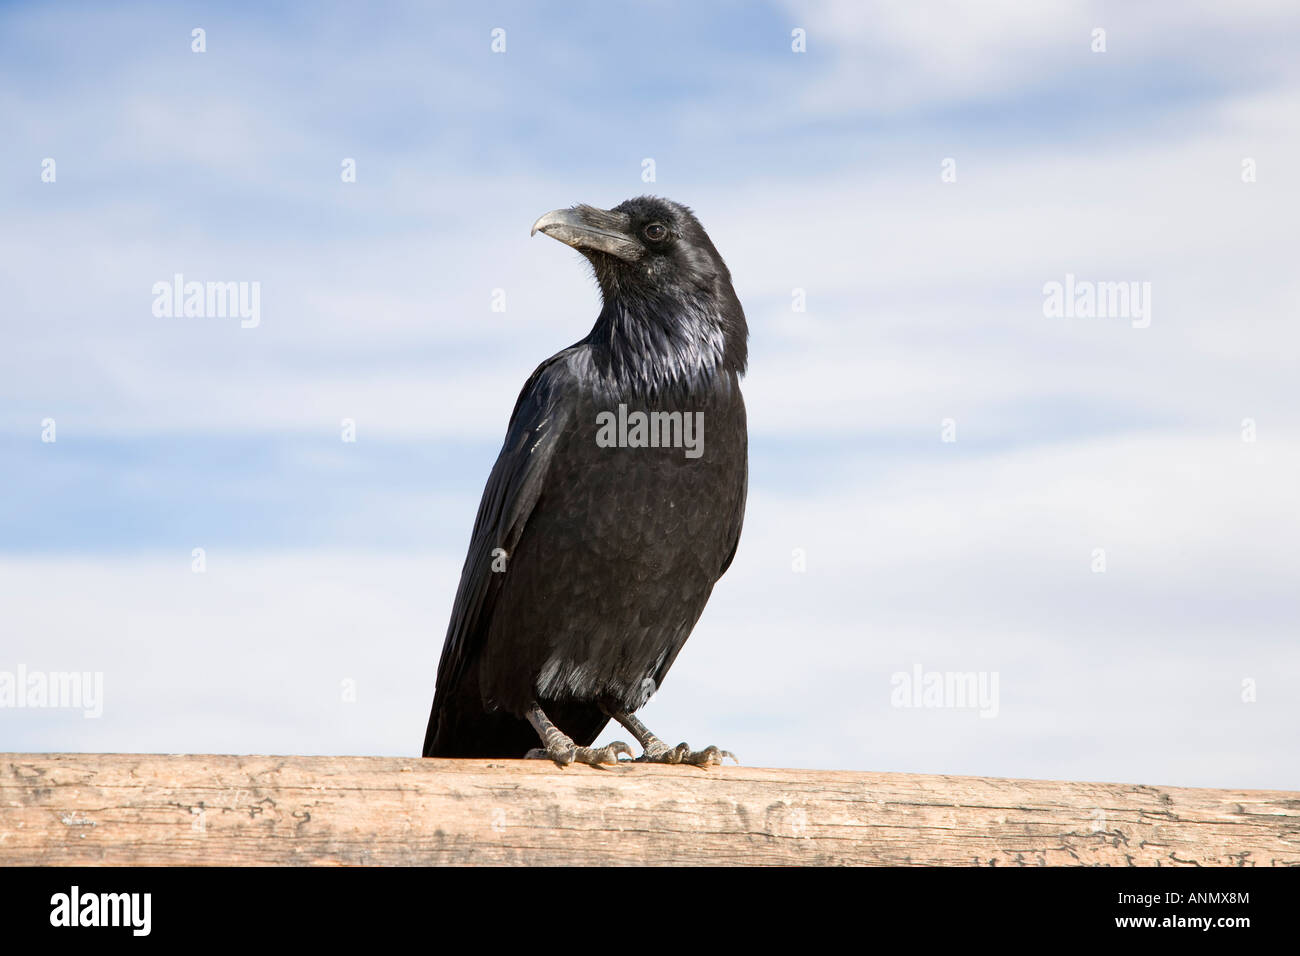 Black Raven standing on a timber, blue sky with clouds - Stock Image